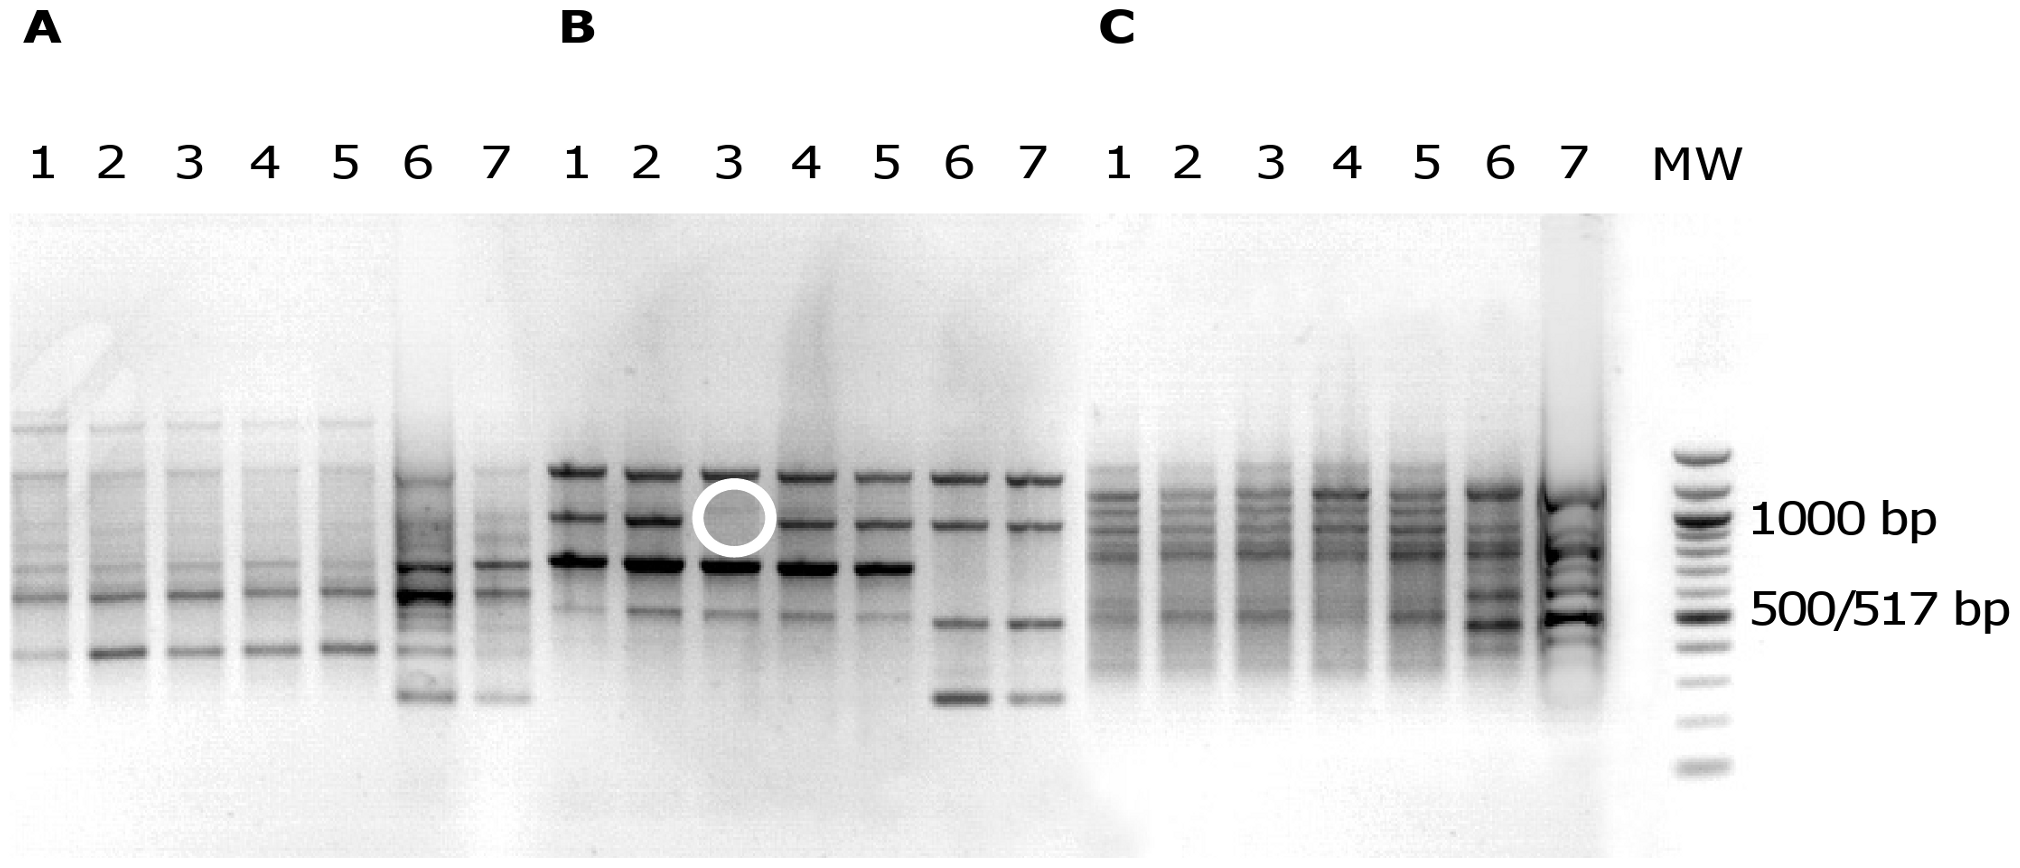 Electrophoretic patterns in agarose gel of PCR products from <i>E. coli</i> isolates.